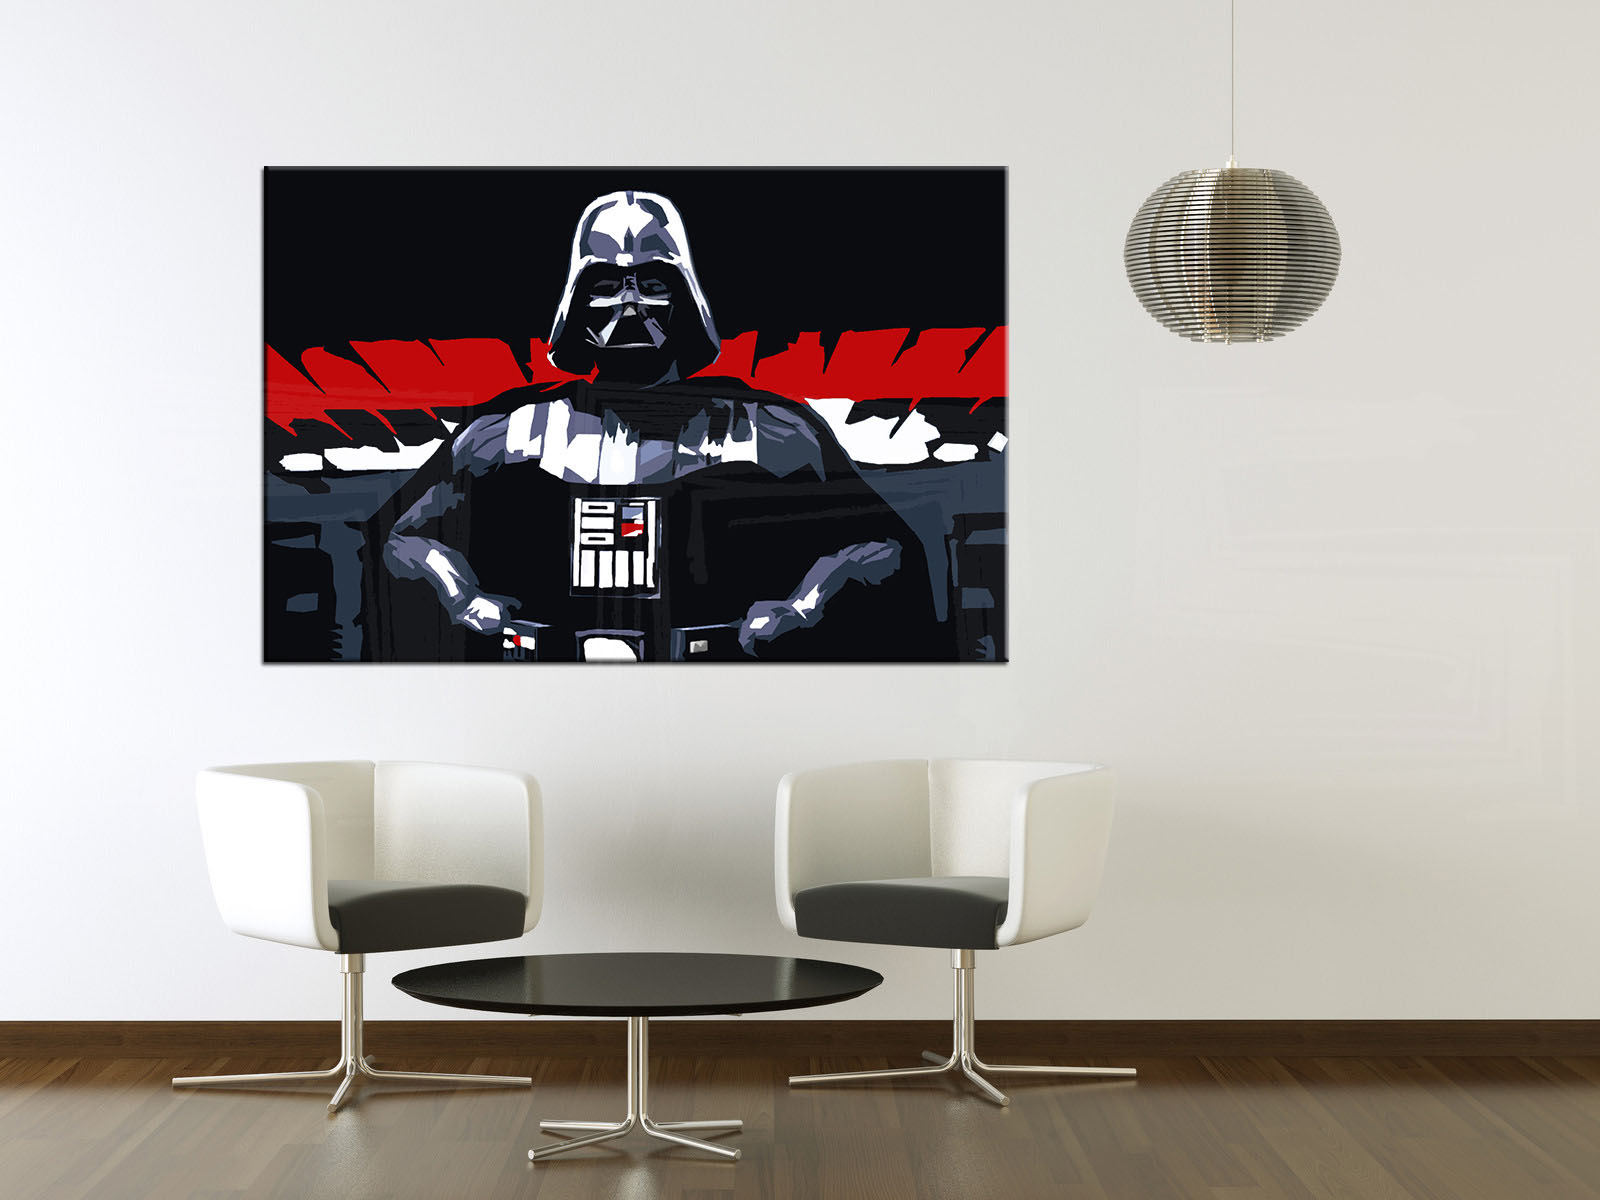 Malovaný POP ART obraz na stěnu STAR WARS - Darth Vader